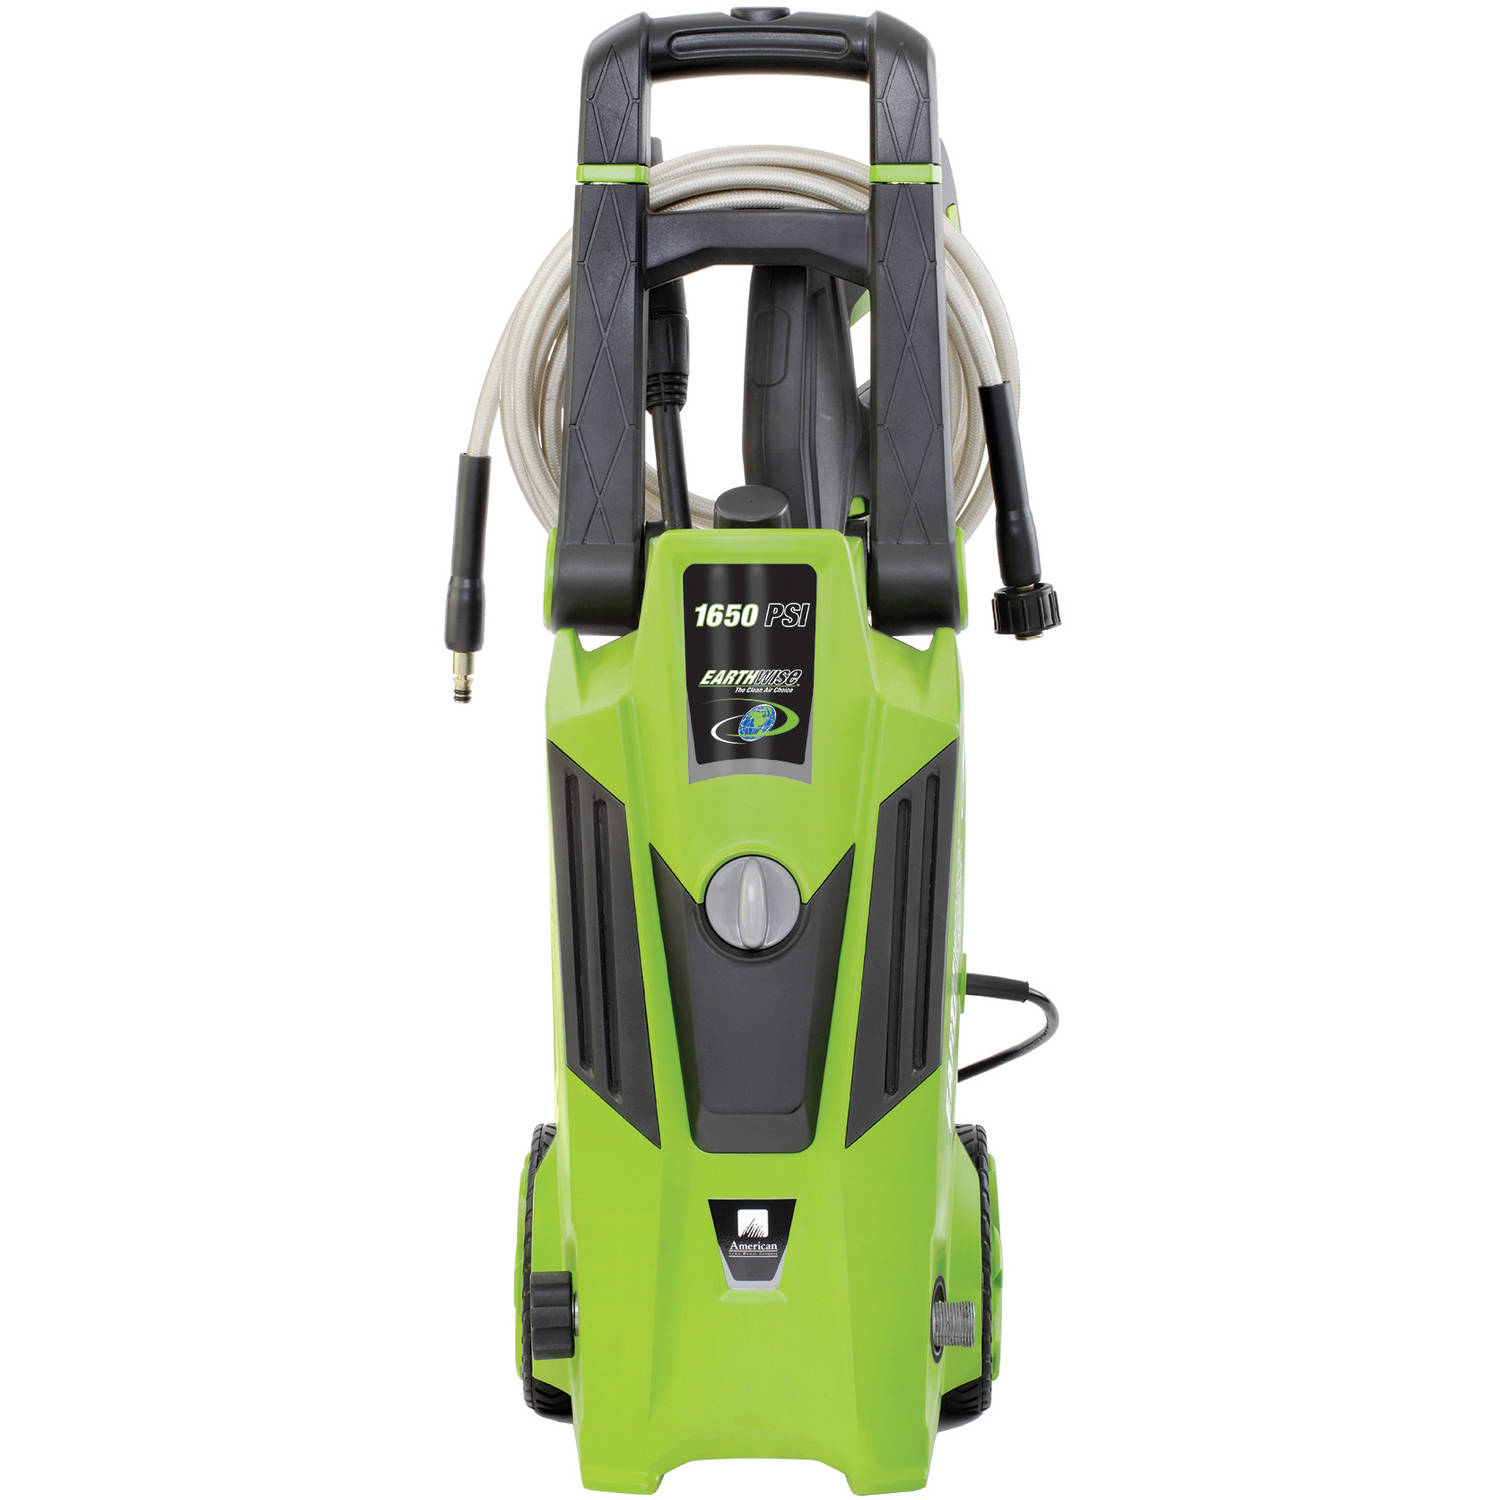 Earthwise 1650 PSI MAX Electric Pressure Washer